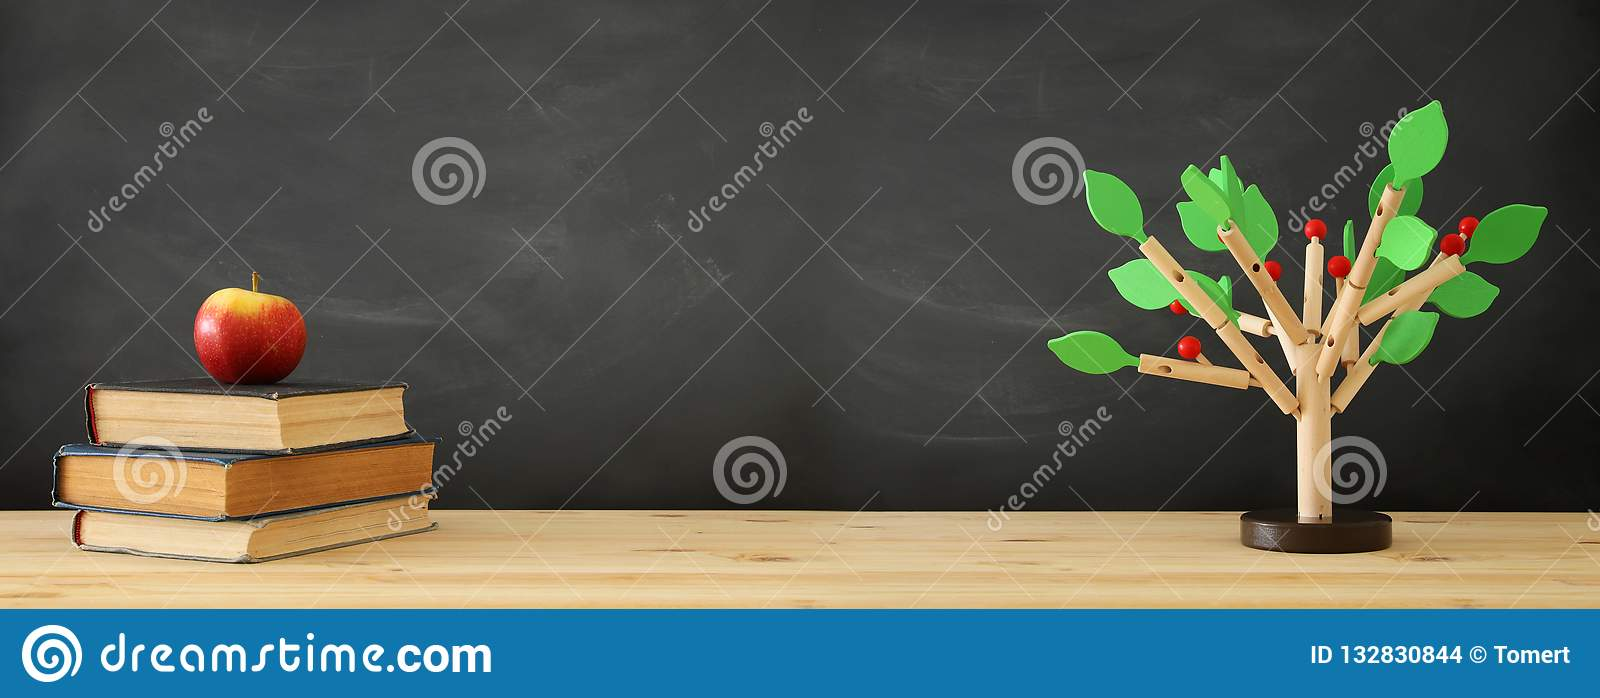 banner of open book and wooden tree puzzle over blackboard background. education and knowledge concept.